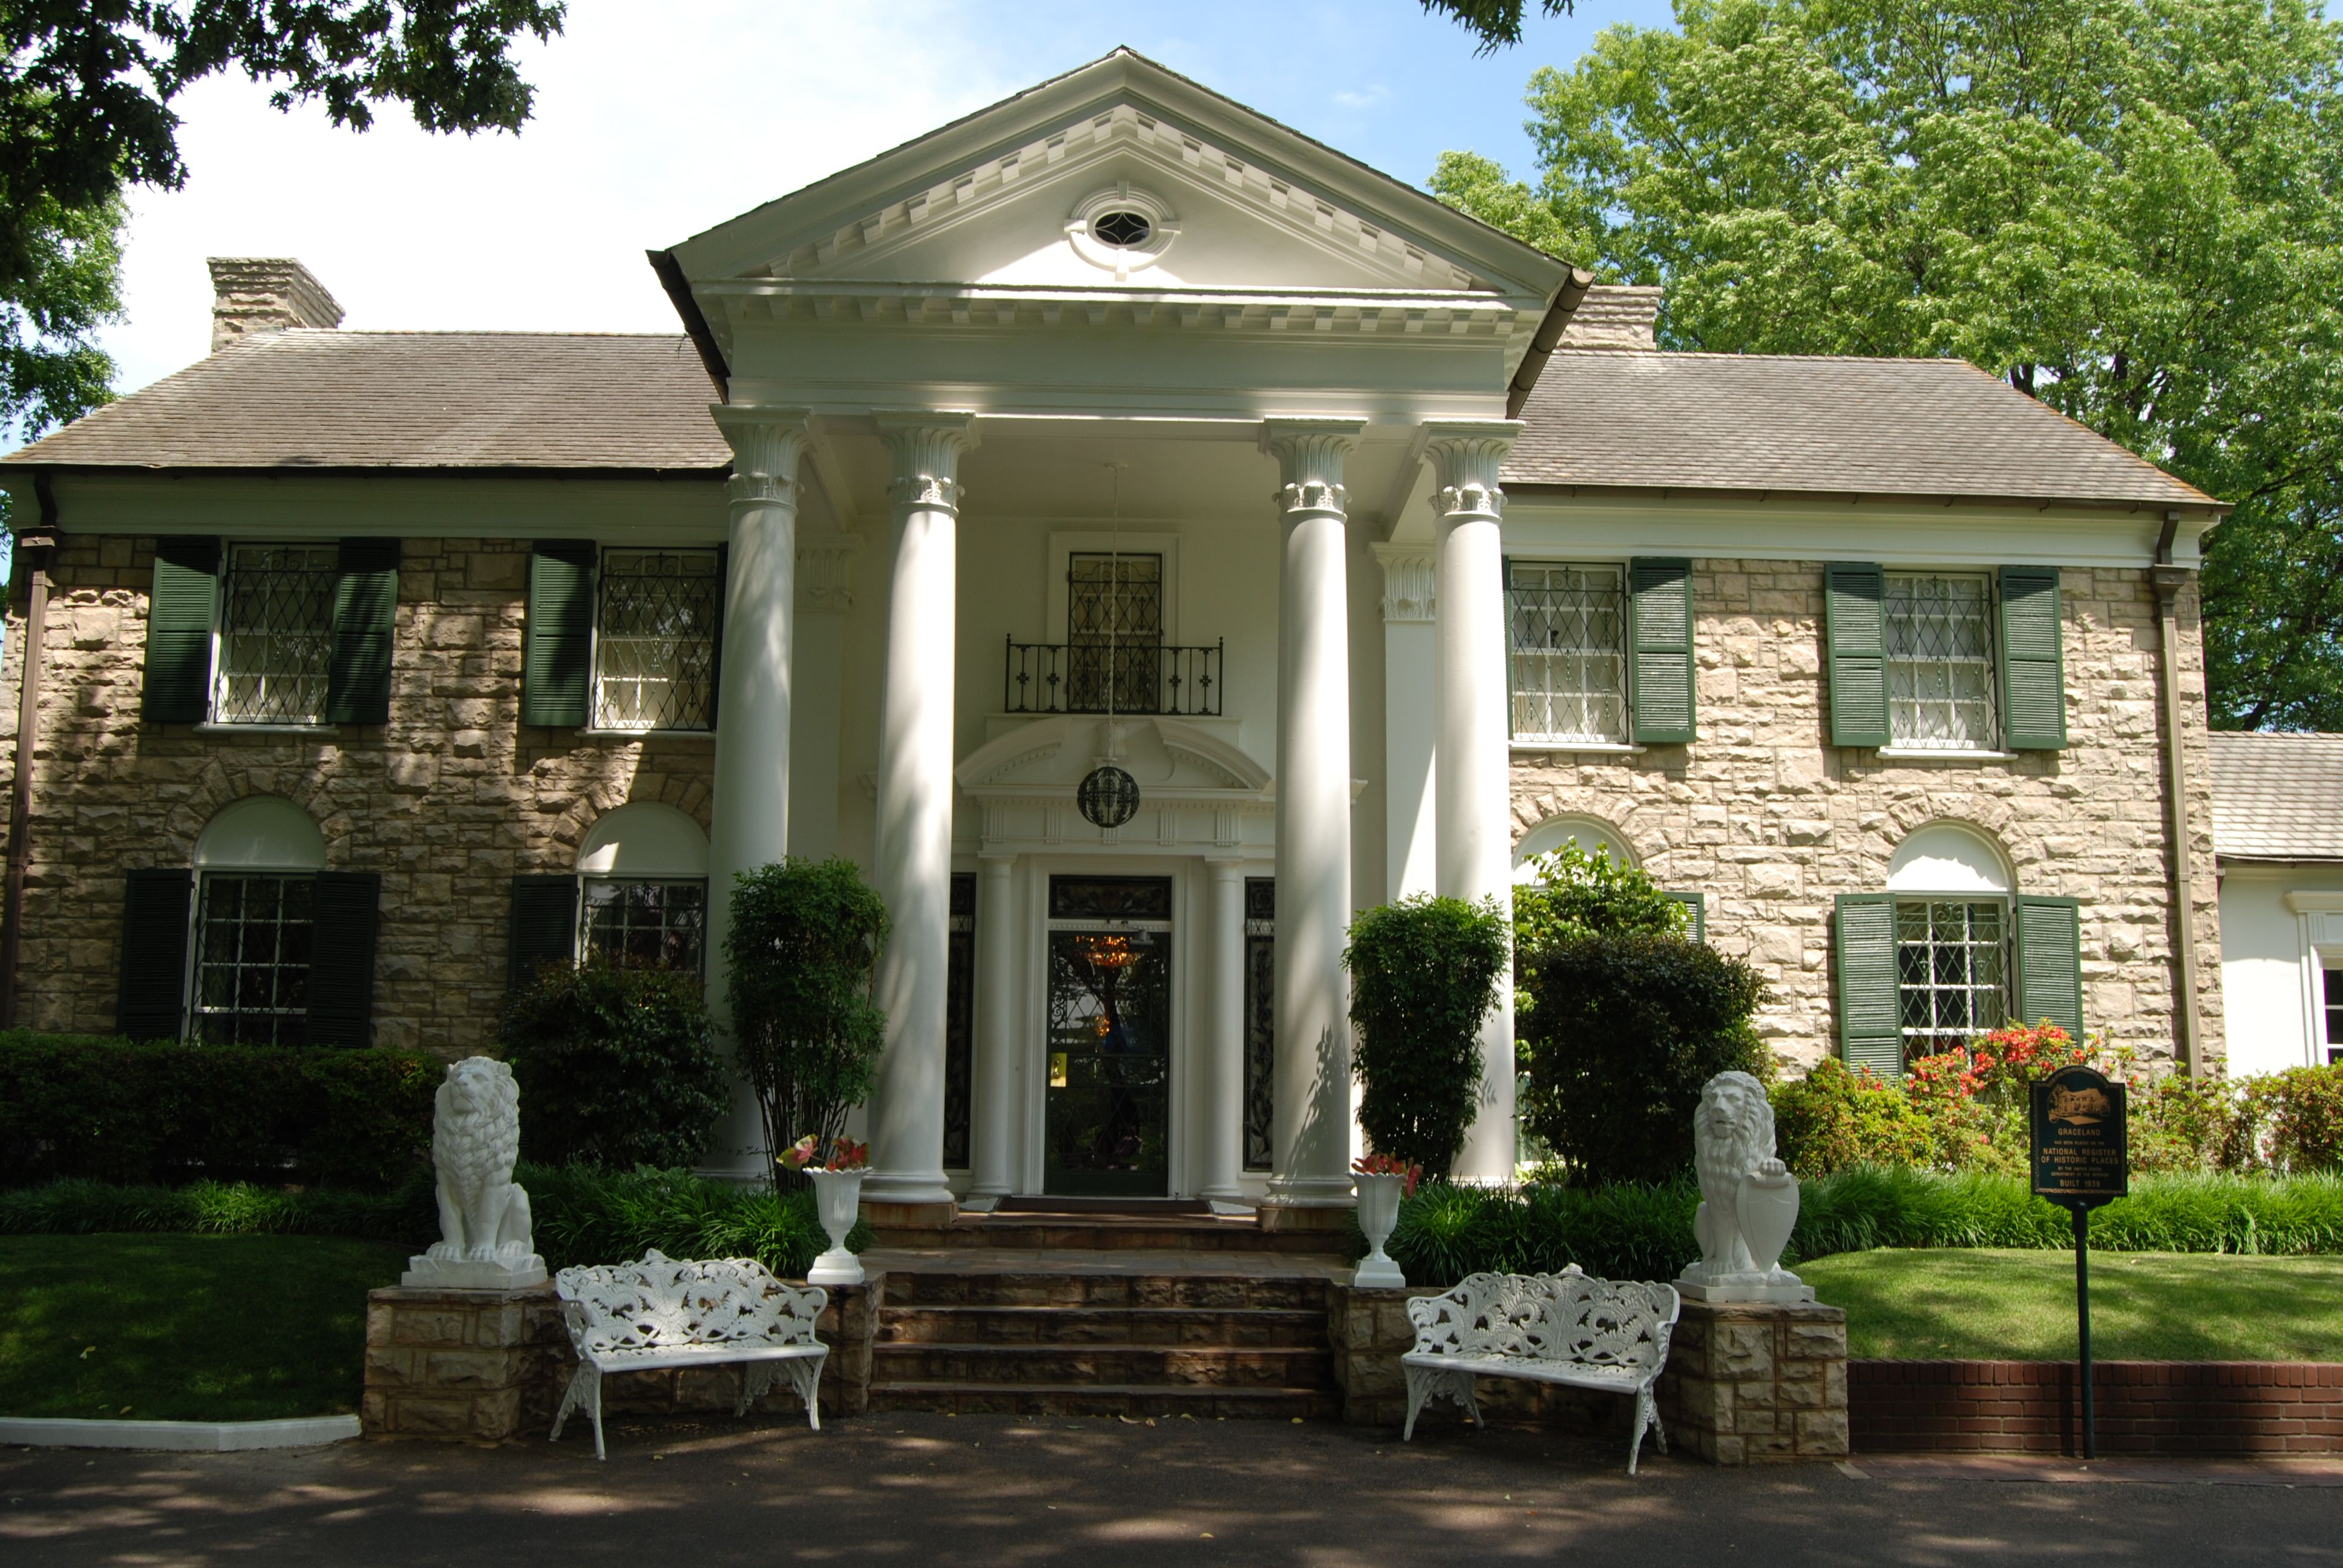 two-story stone mansion with rusticated limestone facade, neoclassical in style with front columns, portico, and pediment